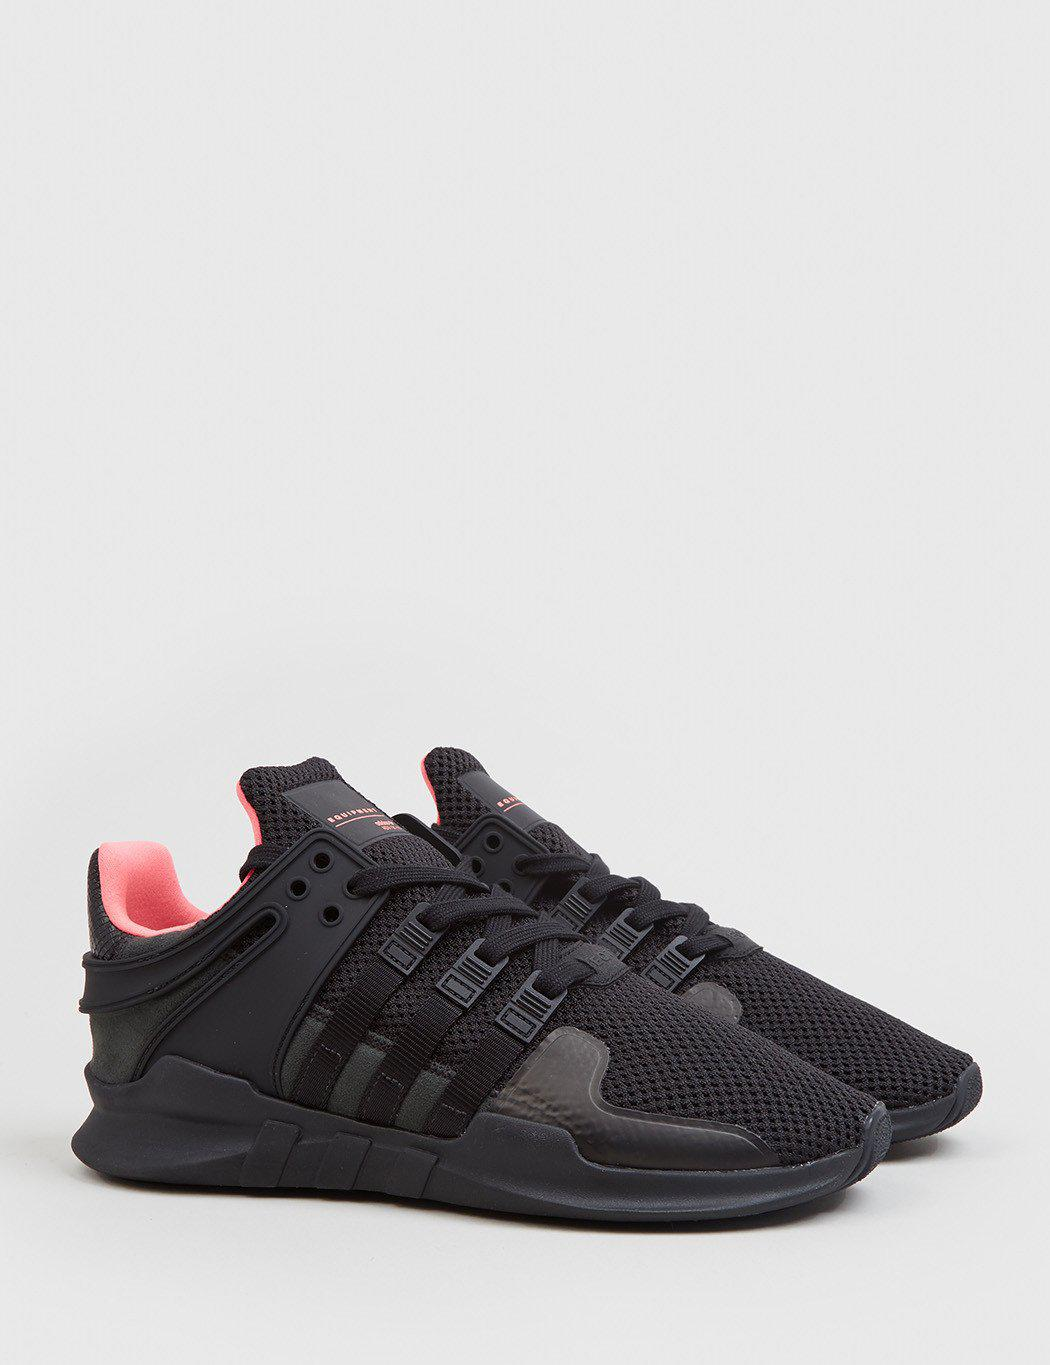 premium selection 5675a 4ac47 Lyst - Adidas Originals Adidas Eqt Support Adv (bb1300) in B